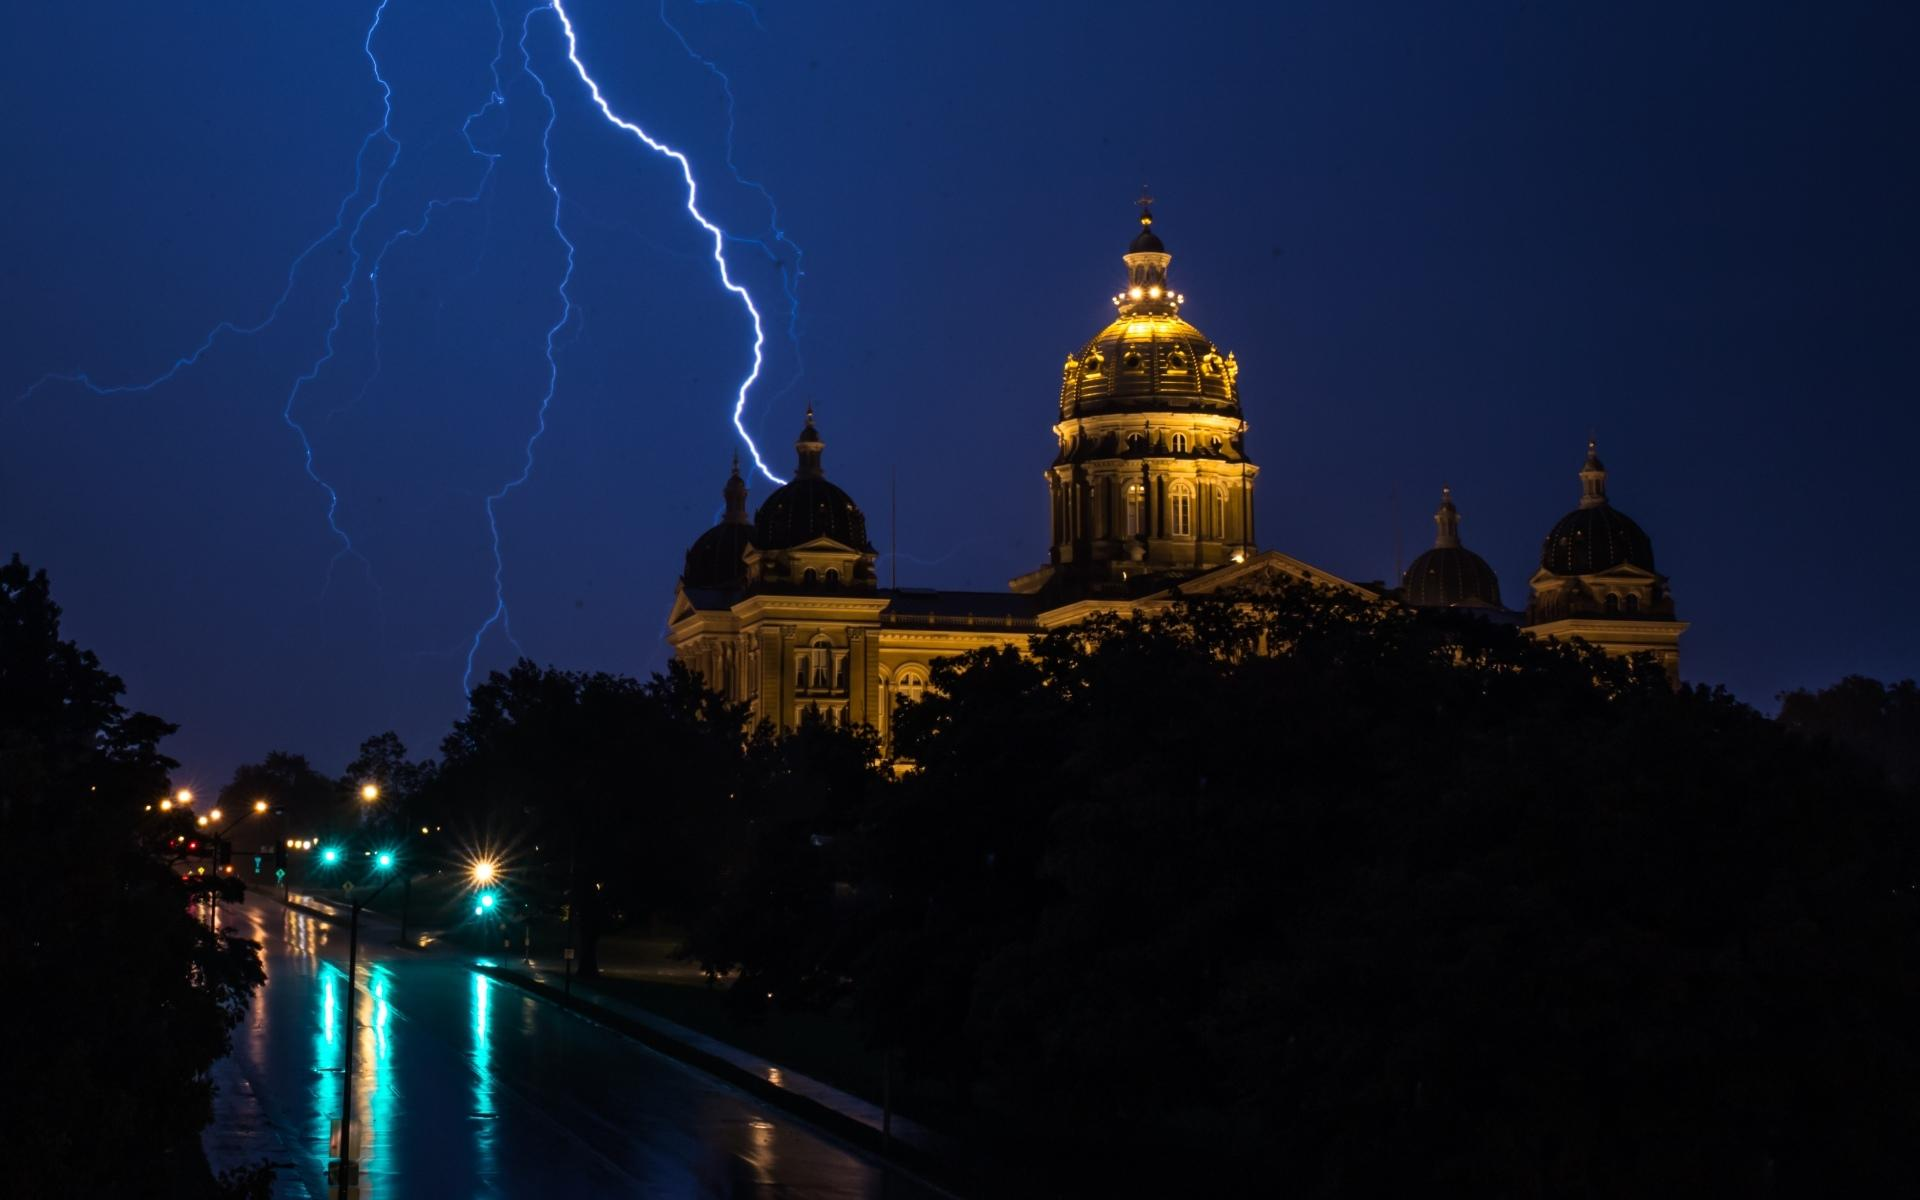 Iowa State Capitol wallpapers HD quality